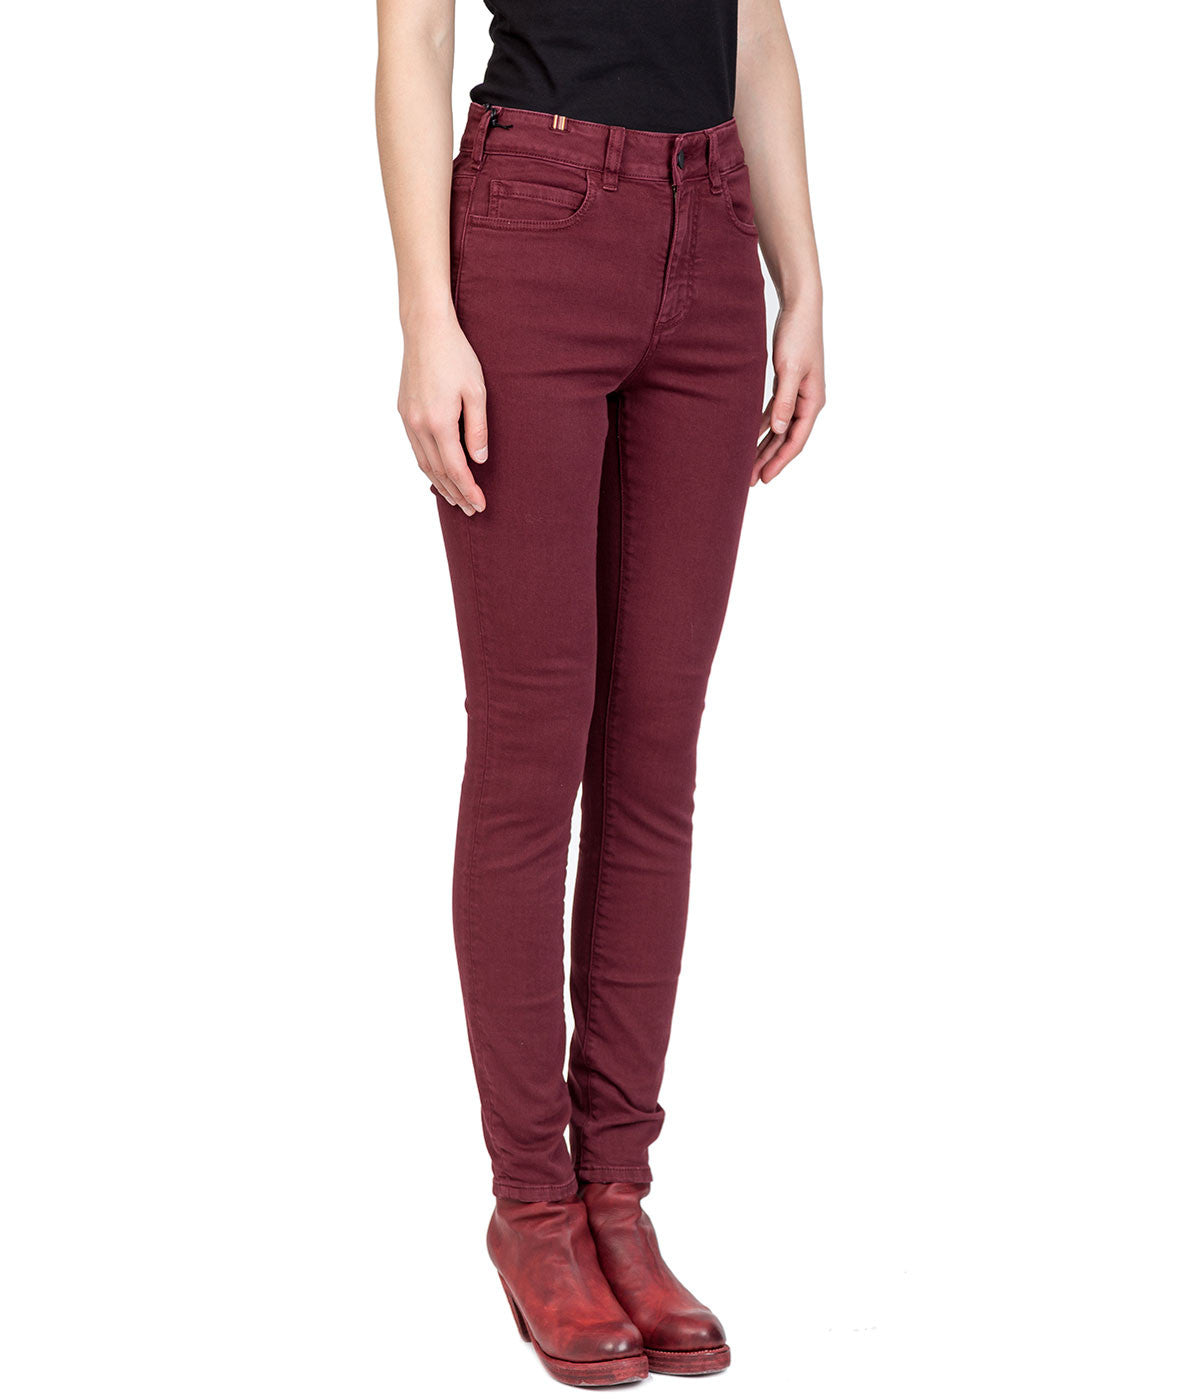 Burgundy Skinny Denim